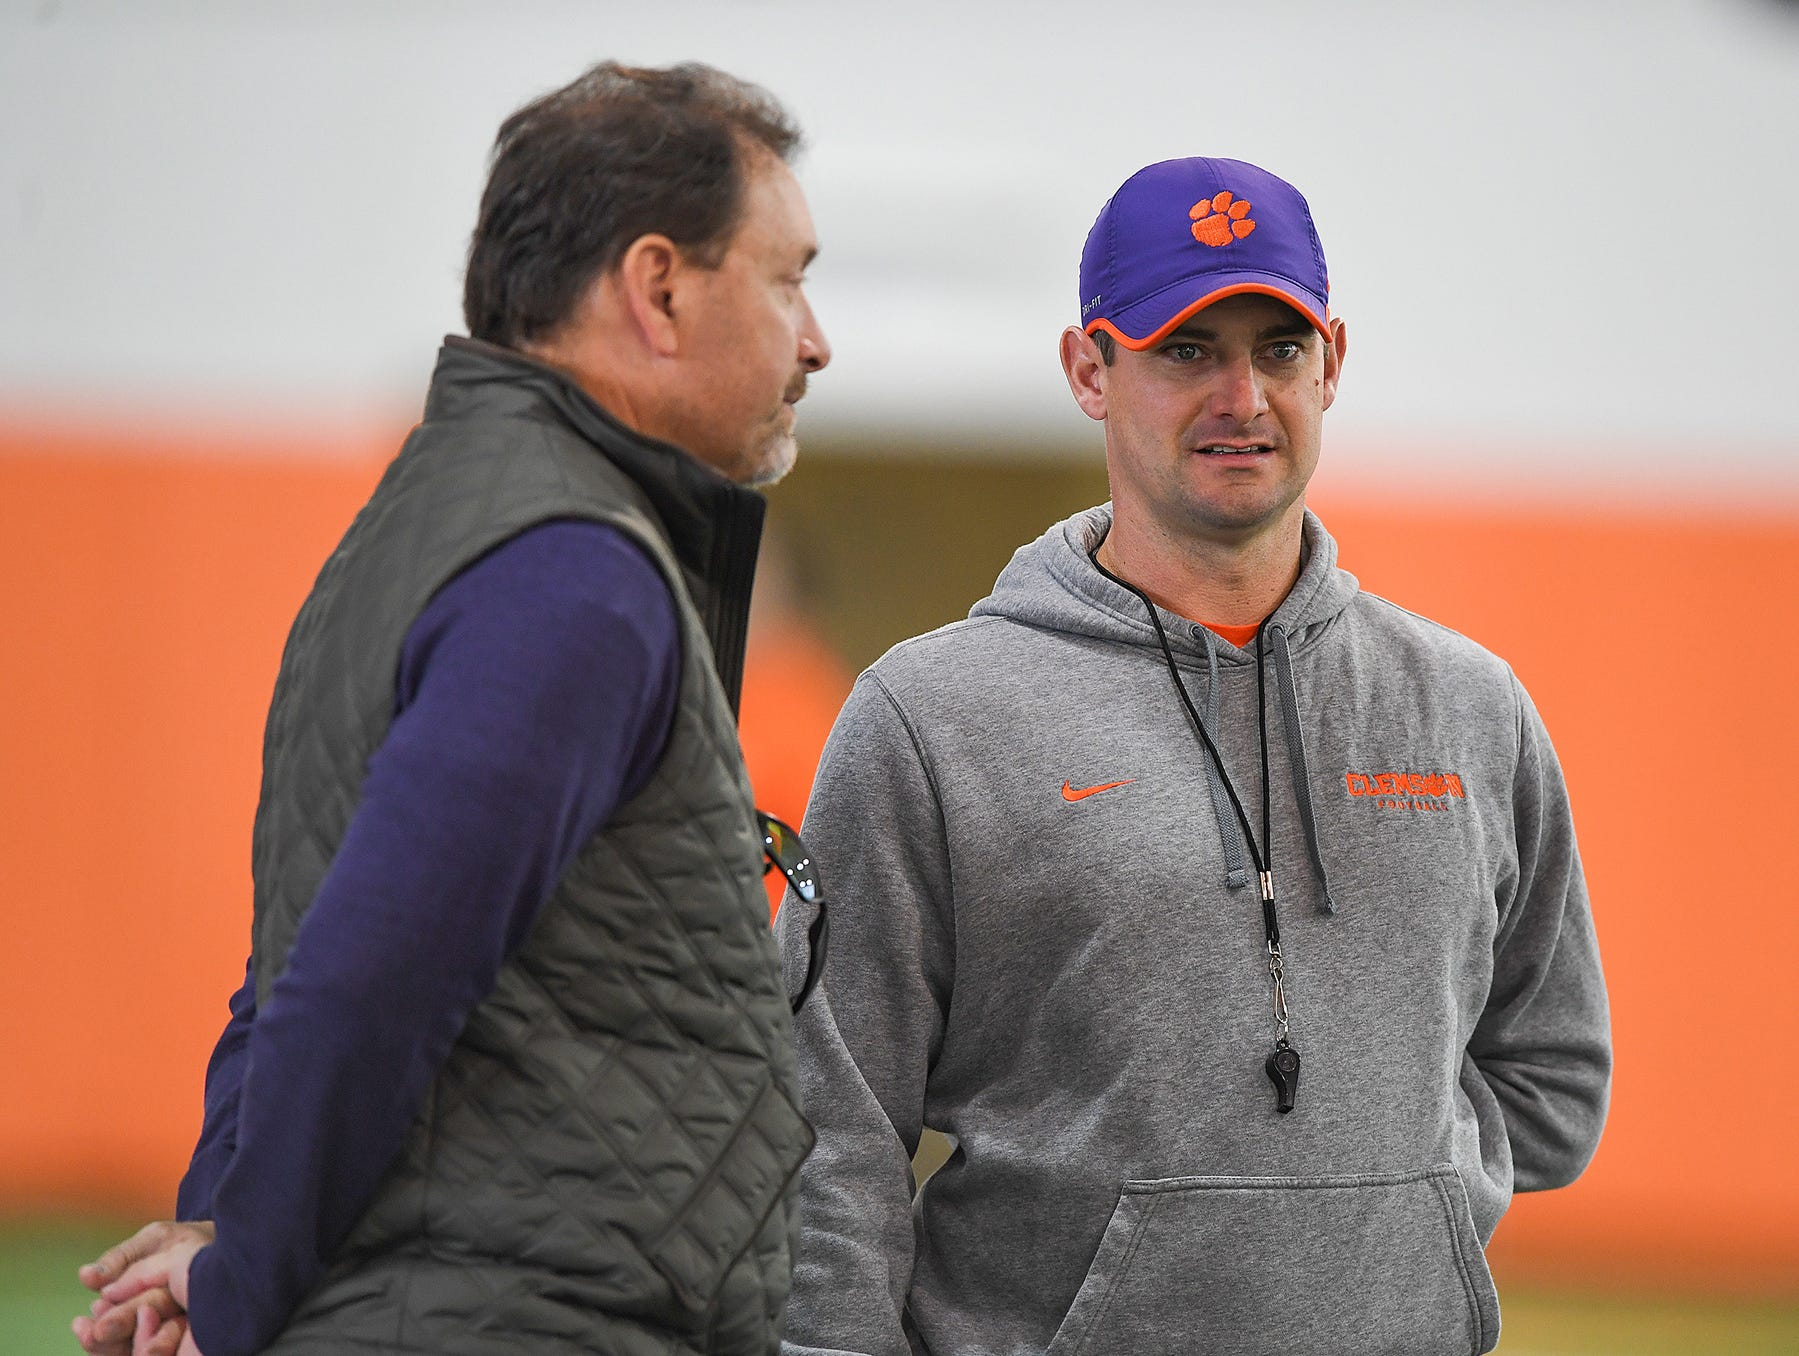 Clemson co-offensive coordinator Jeff Scott talks with former Clemson quarterback Rodney Williams during the Tigers Cotton Bowl practice on Wednesday, December 12, 2018.